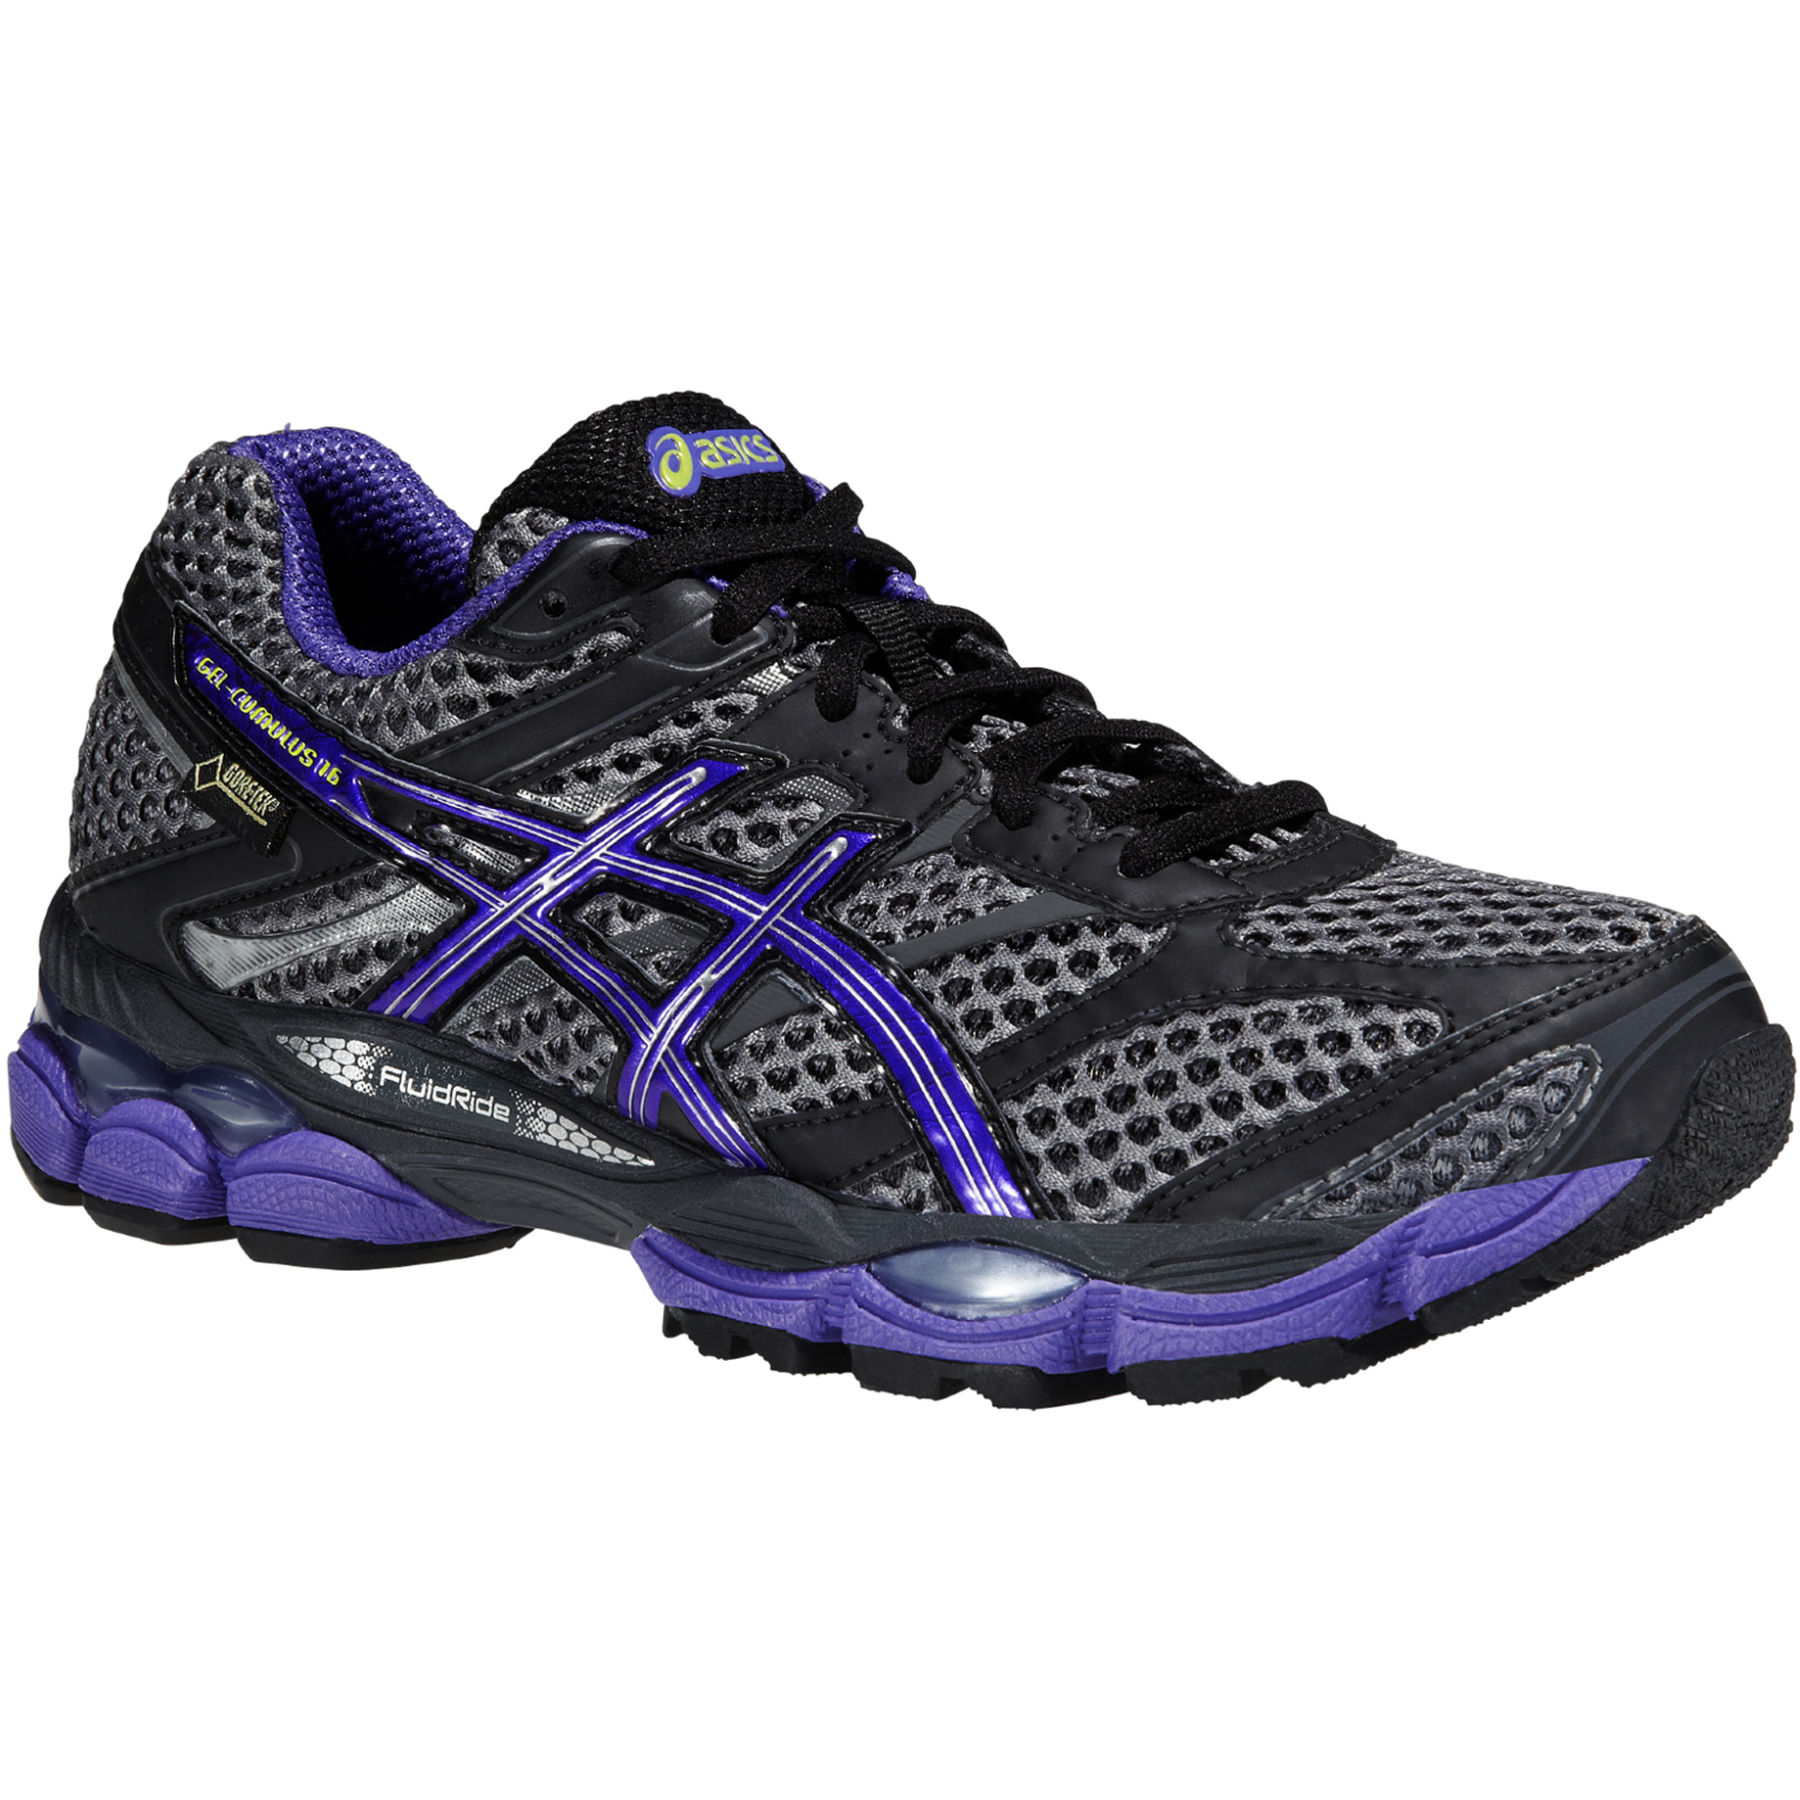 chaussures de running amorties asics women 39 s gel cumulus 16 gtx shoes aw14 wiggle france. Black Bedroom Furniture Sets. Home Design Ideas